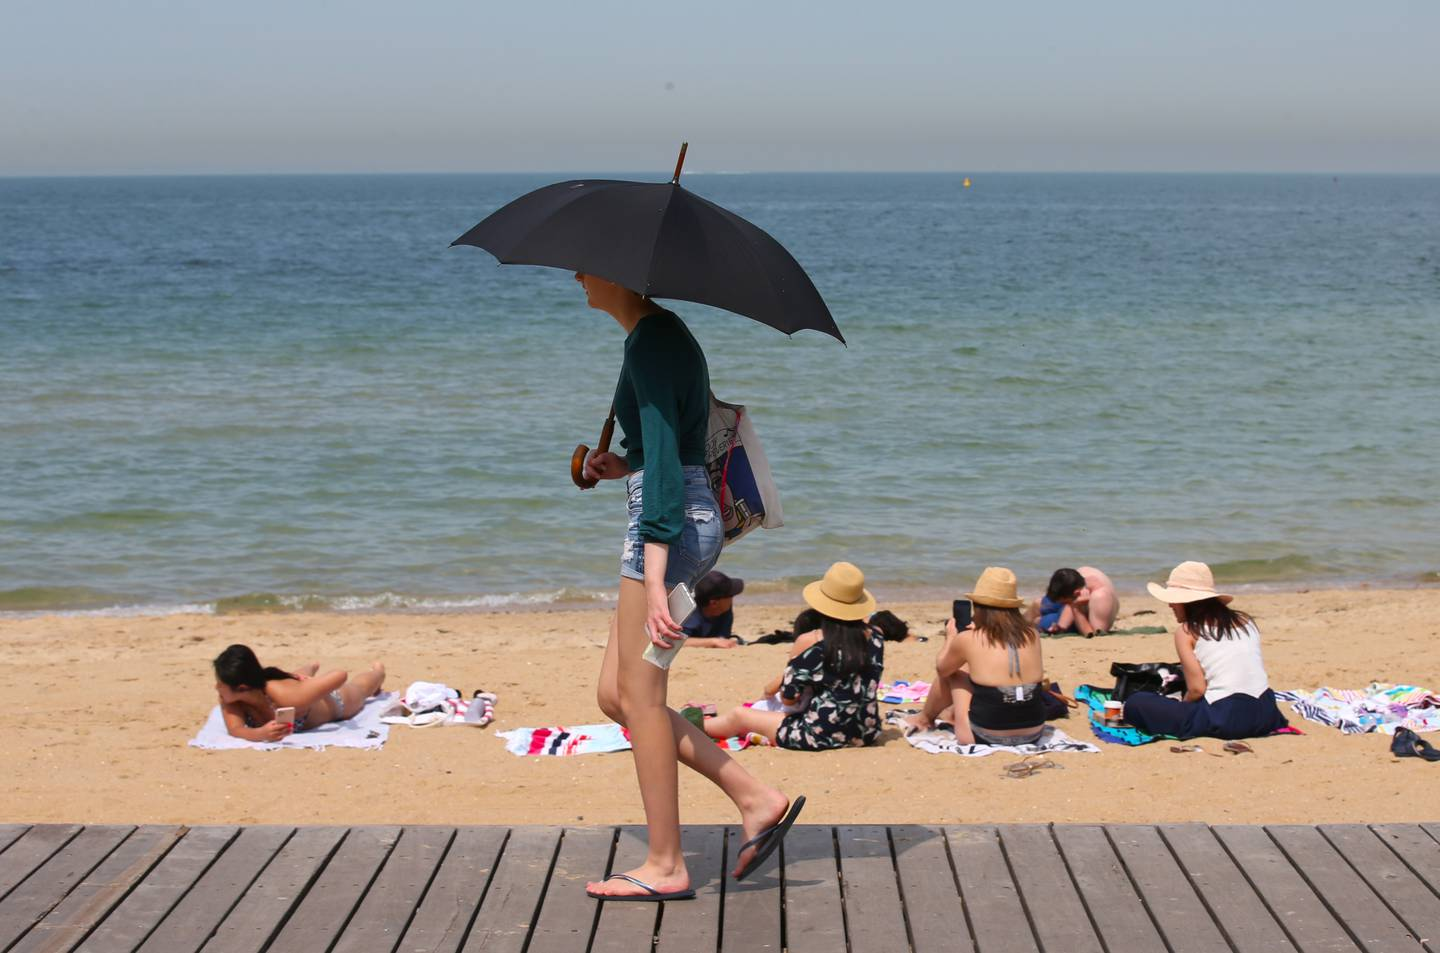 epa08078627 People flock to St Kilda beach as a heatwave sweeps across the state of Victoria, in St Kilda, south of Melbourne, Australia, 18 December 2019. According to media reports, a number of Australian states are bracing for rising temperatures that could exceed 40 degrees Celsius, as a heatwave continues across the country, increasing the risk of bushfires.  EPA/DAVID CROSLING  AUSTRALIA AND NEW ZEALAND OUT